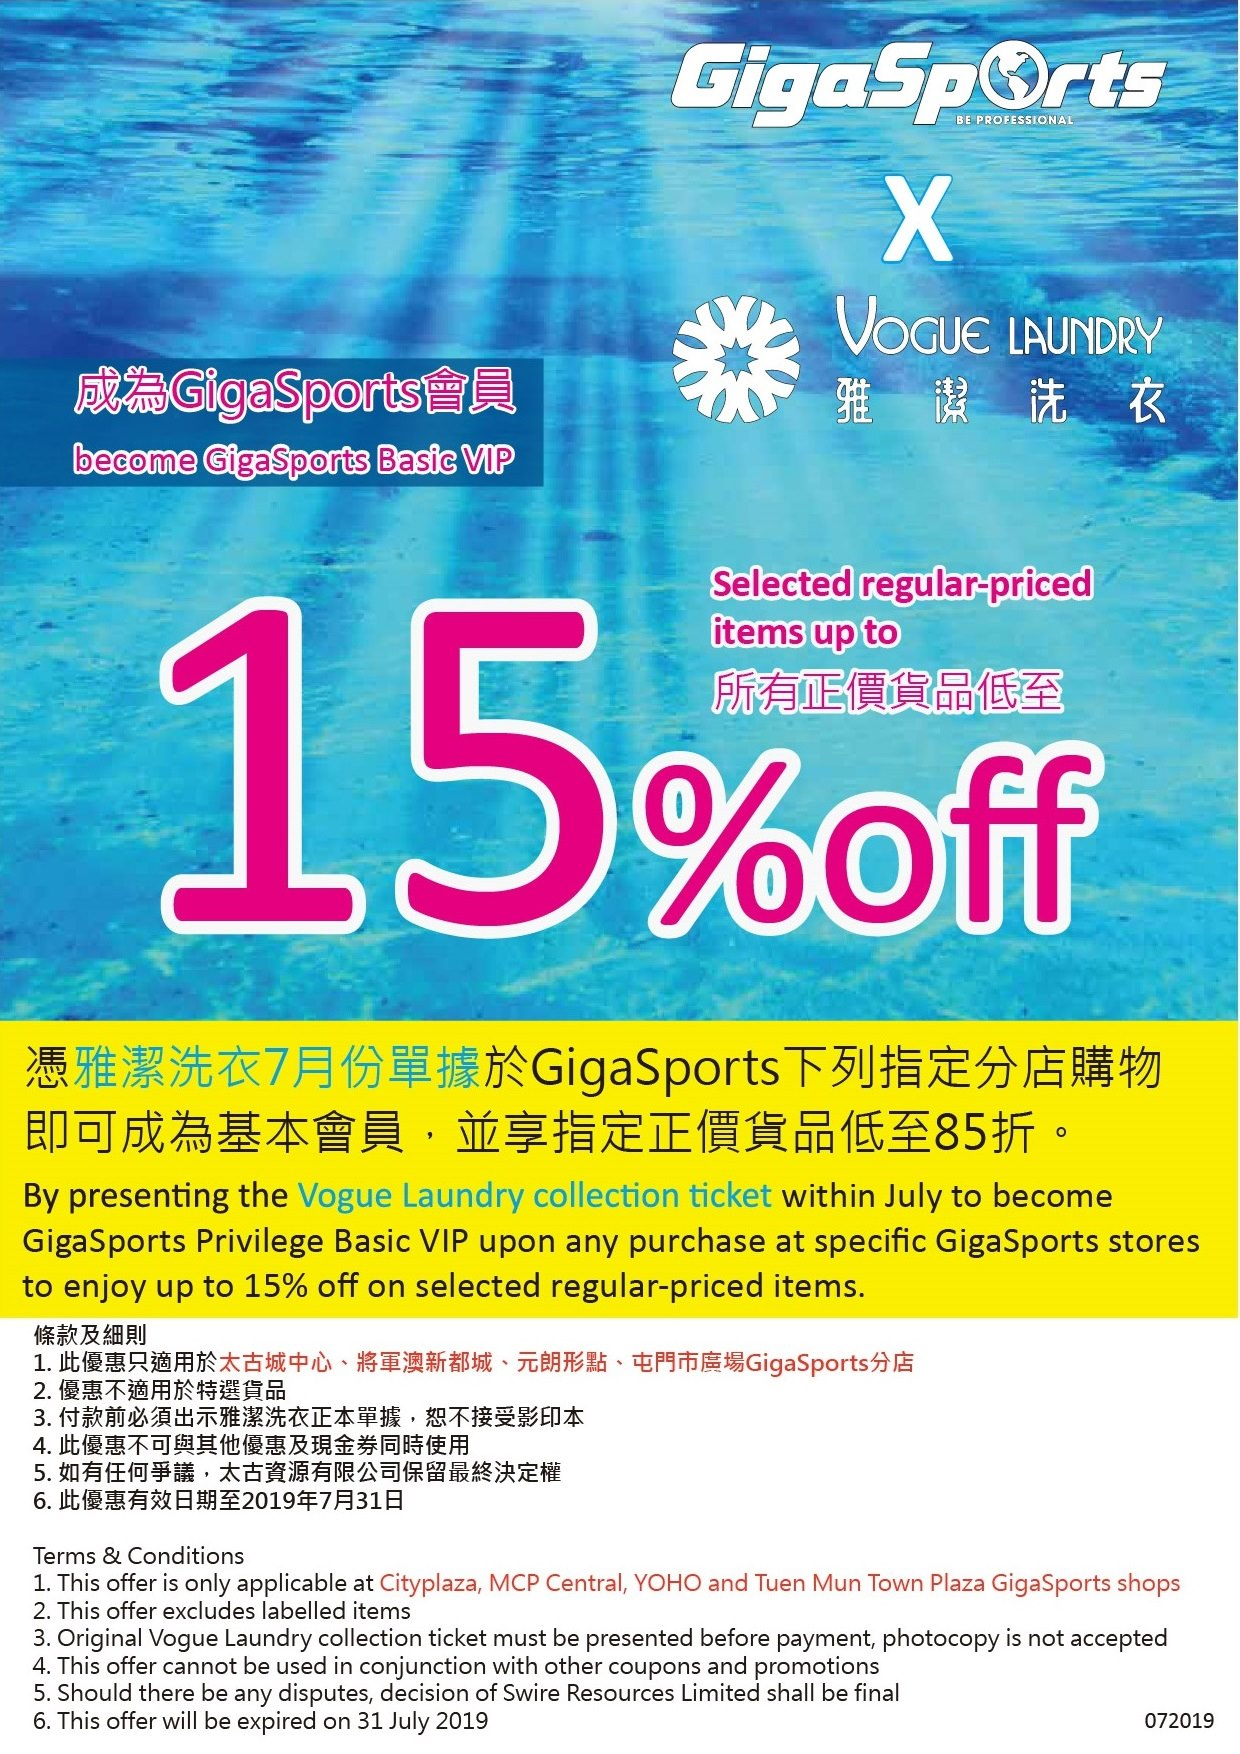 Simply show The Gigasport Receipt at shop